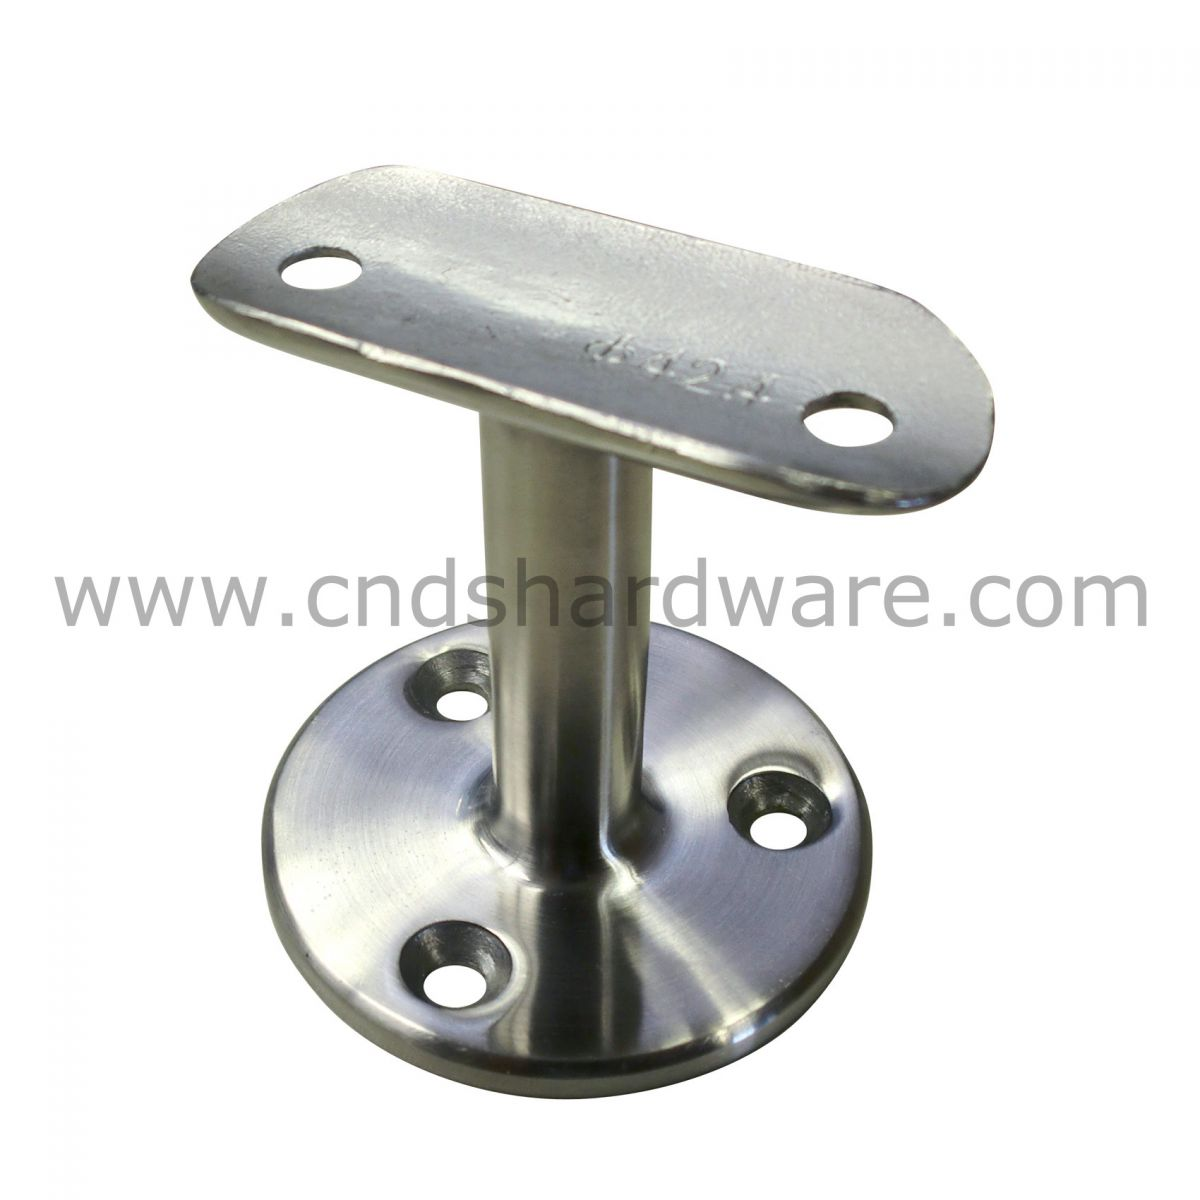 Handrail Support DS7051